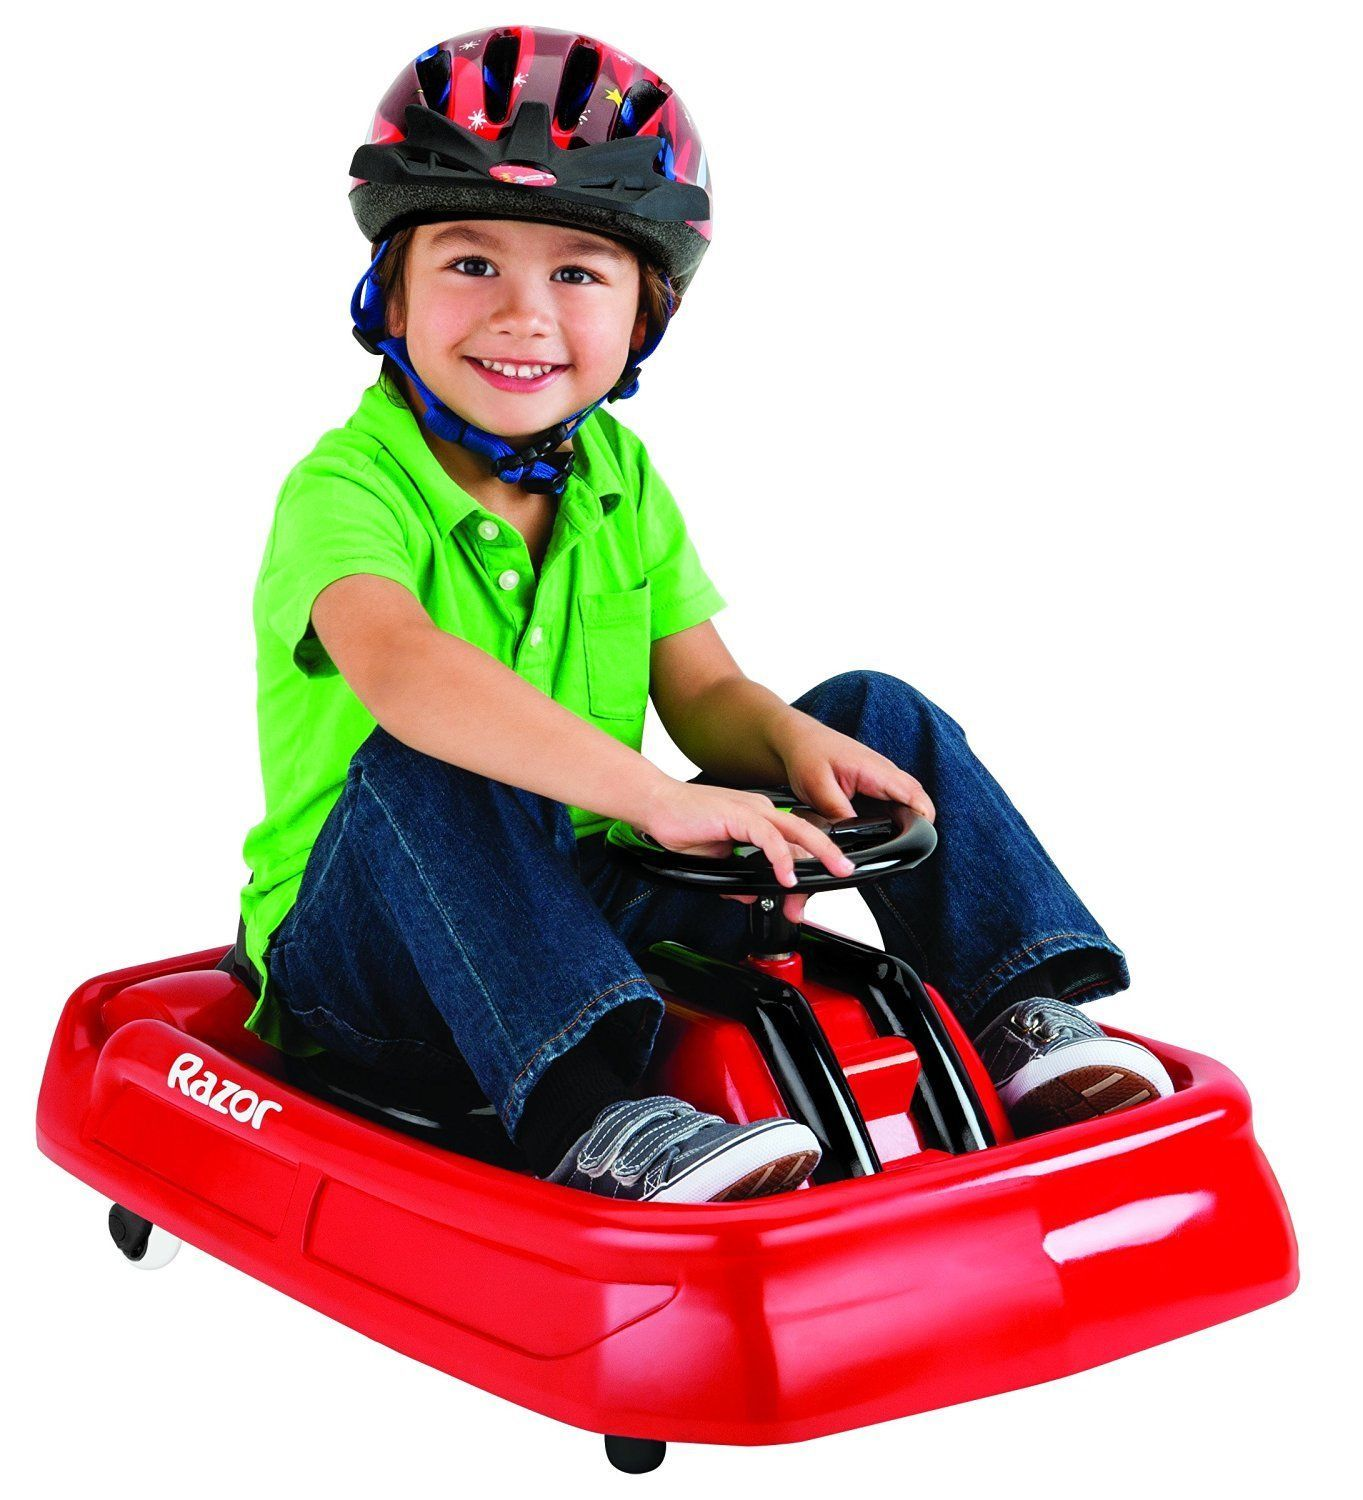 Razor Jr Cart Ride On Electric Powered Outdoor Car Toy For Kids Toddlers